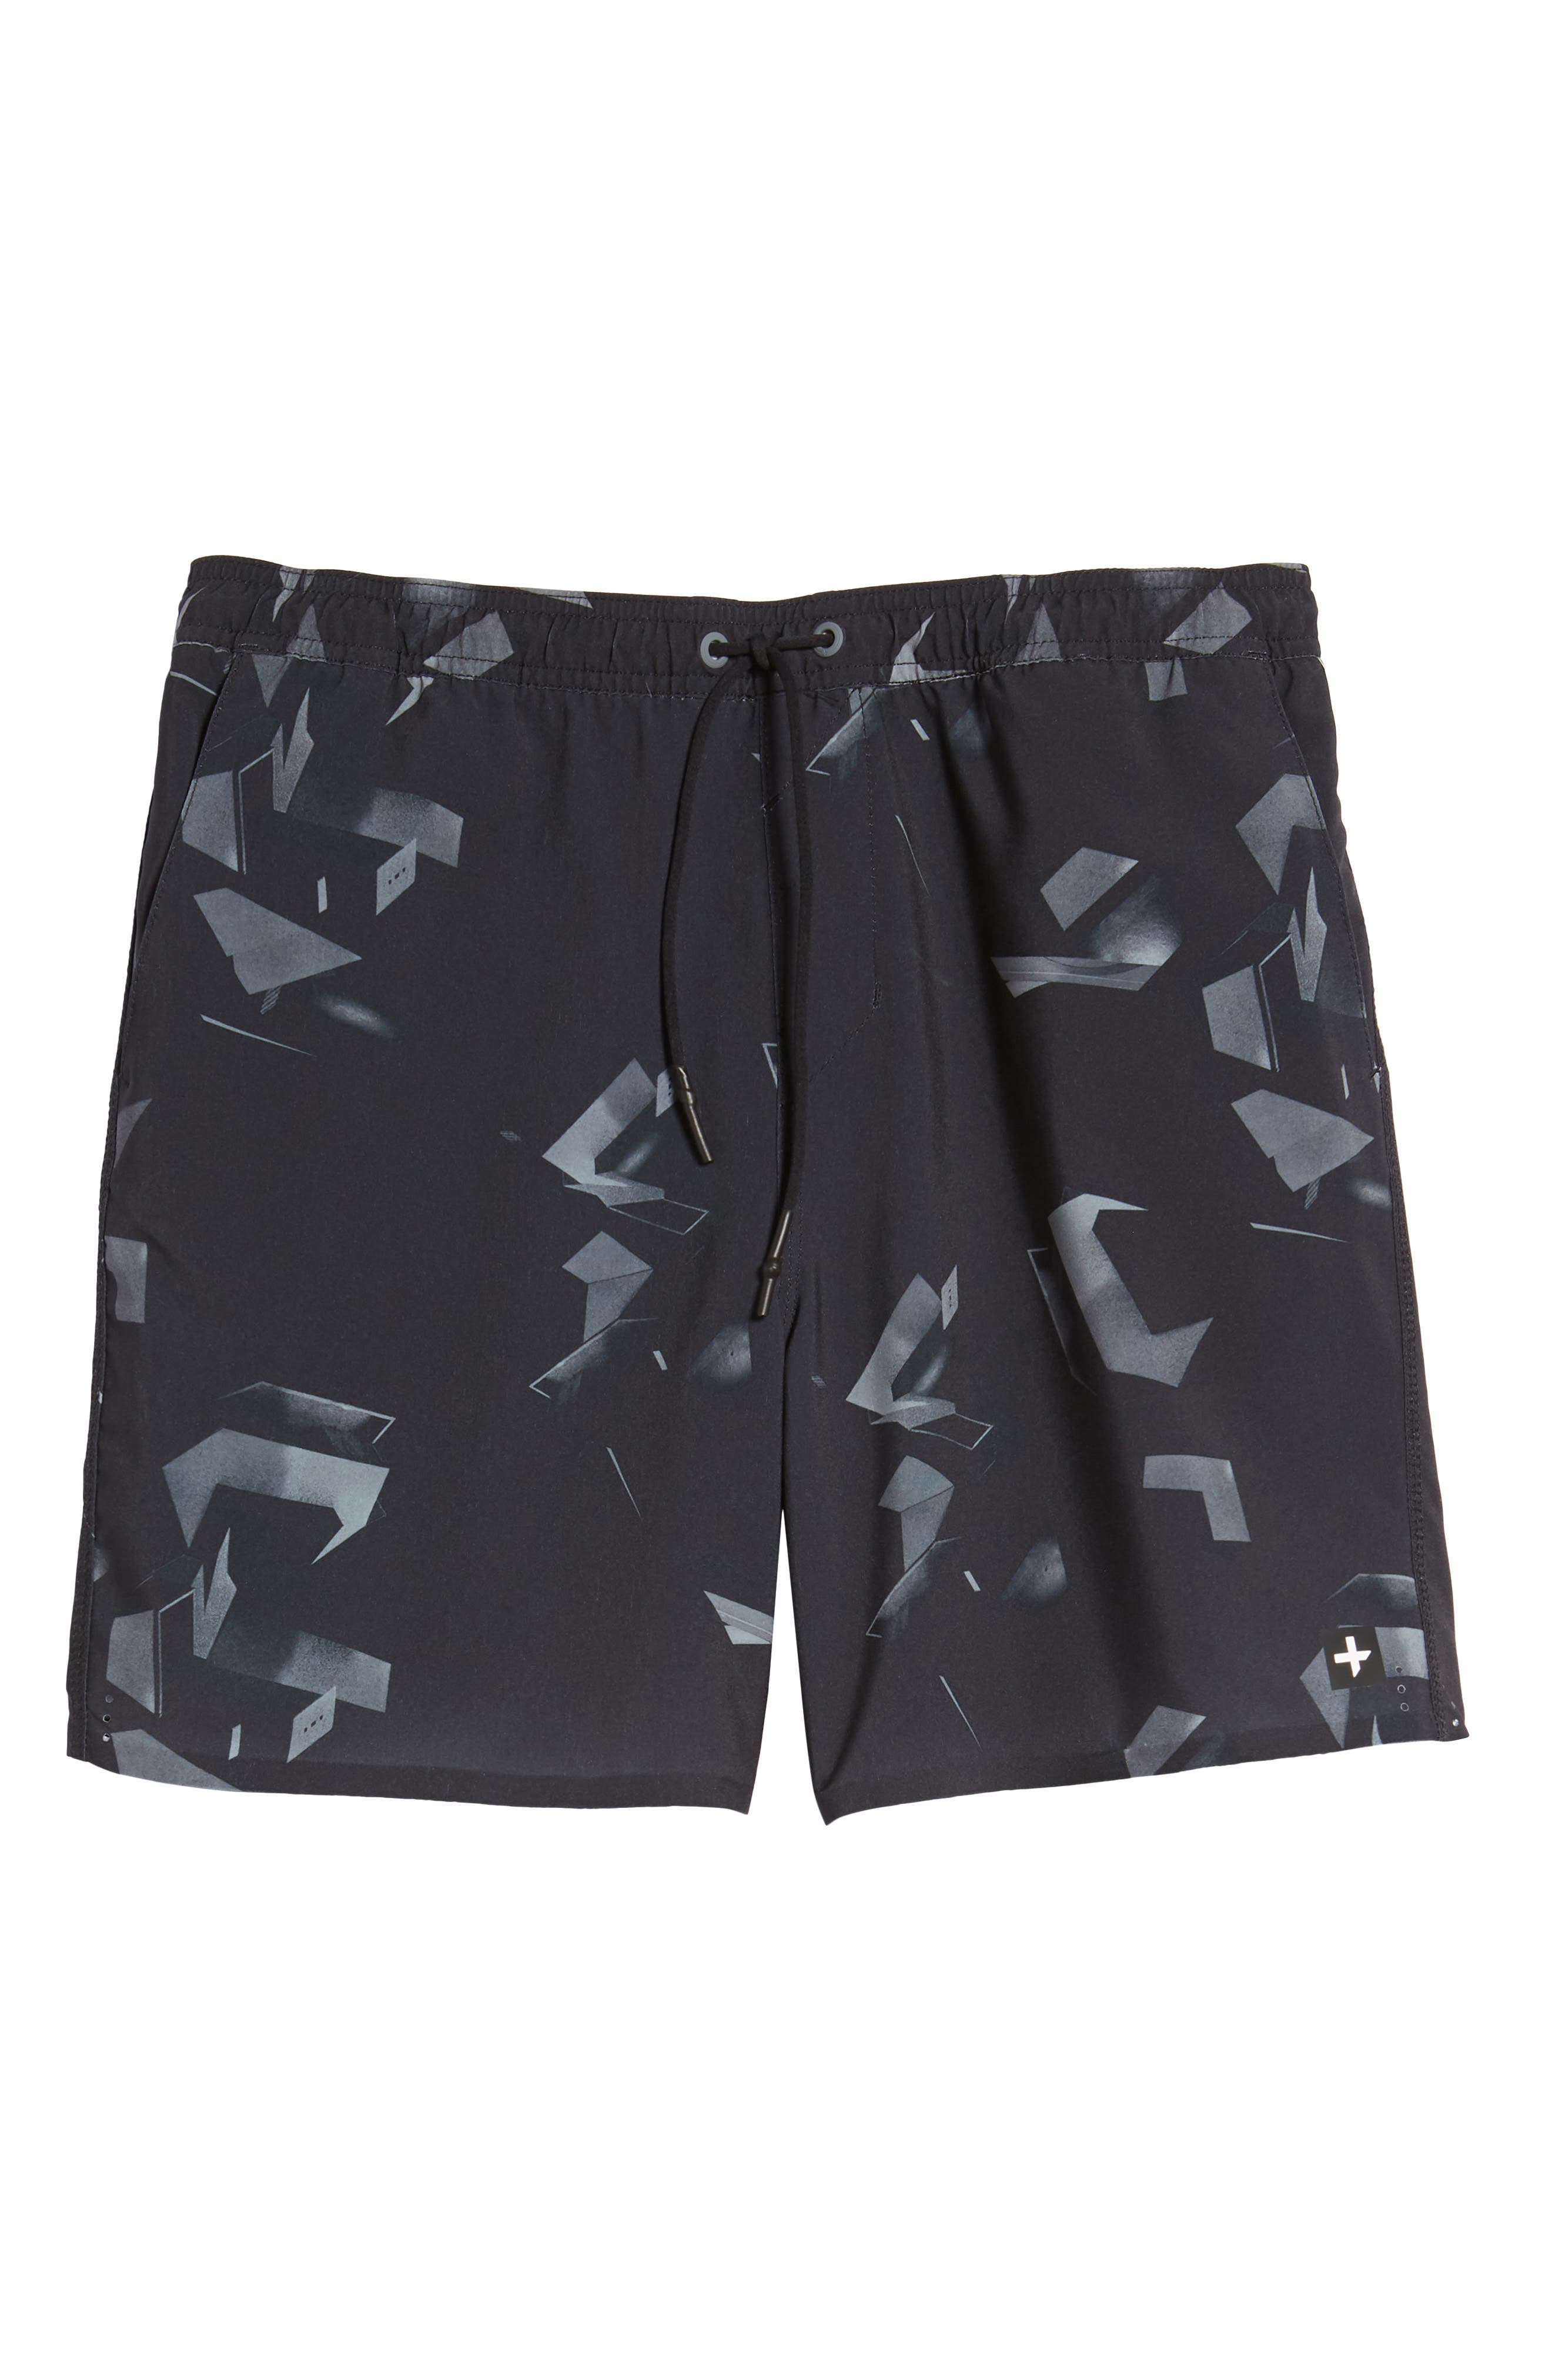 Desmond Swim Trunks,                             Alternate thumbnail 6, color,                             001